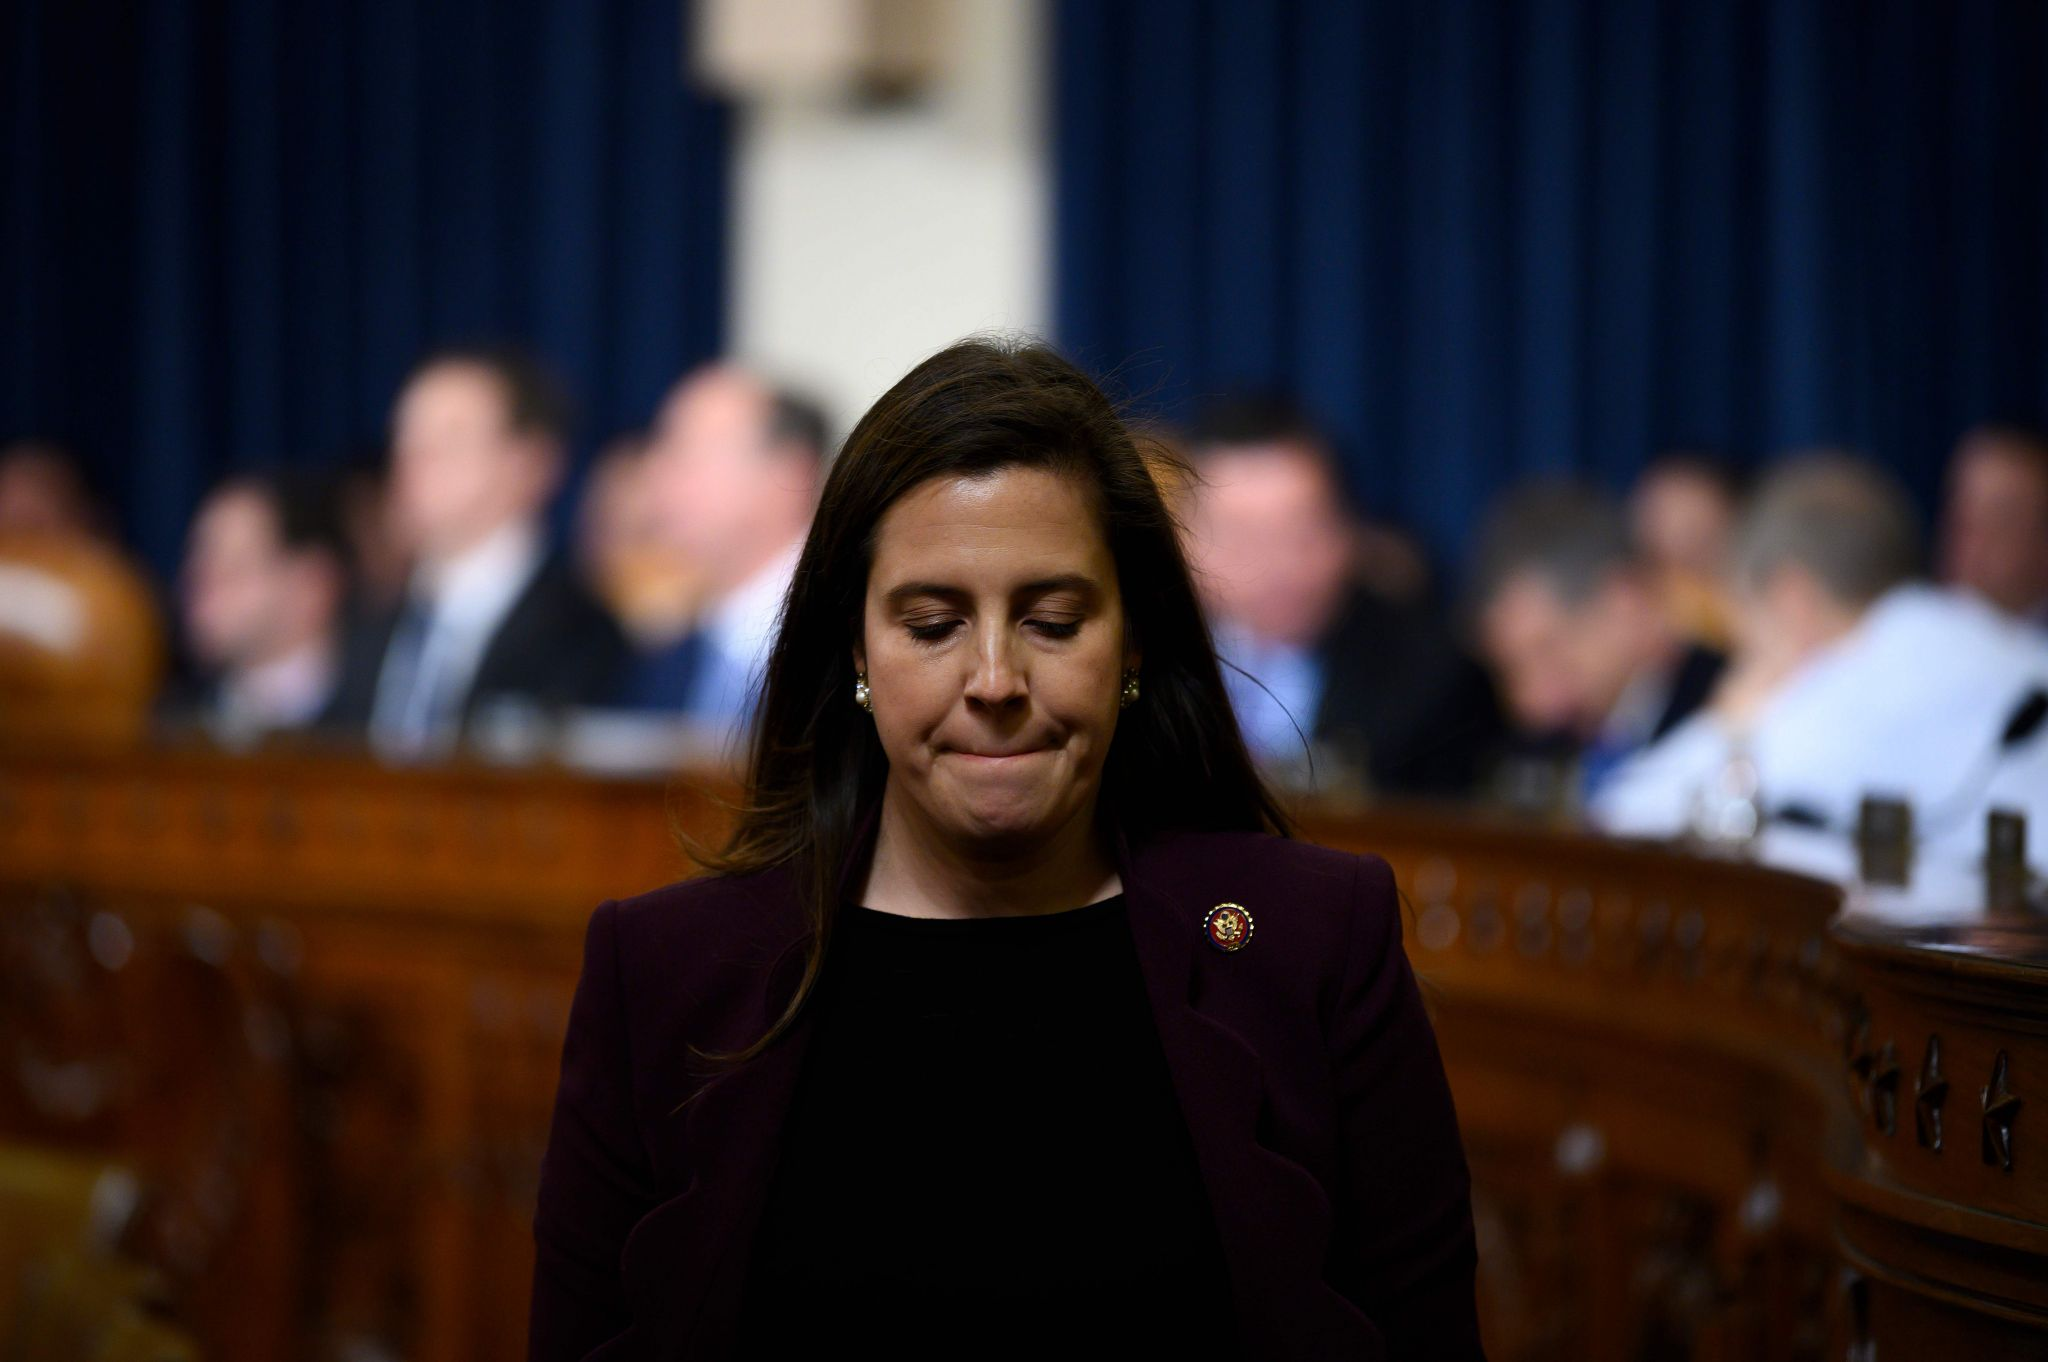 Stefanik skips Intelligence hearings for months, calling them 'spectacles'